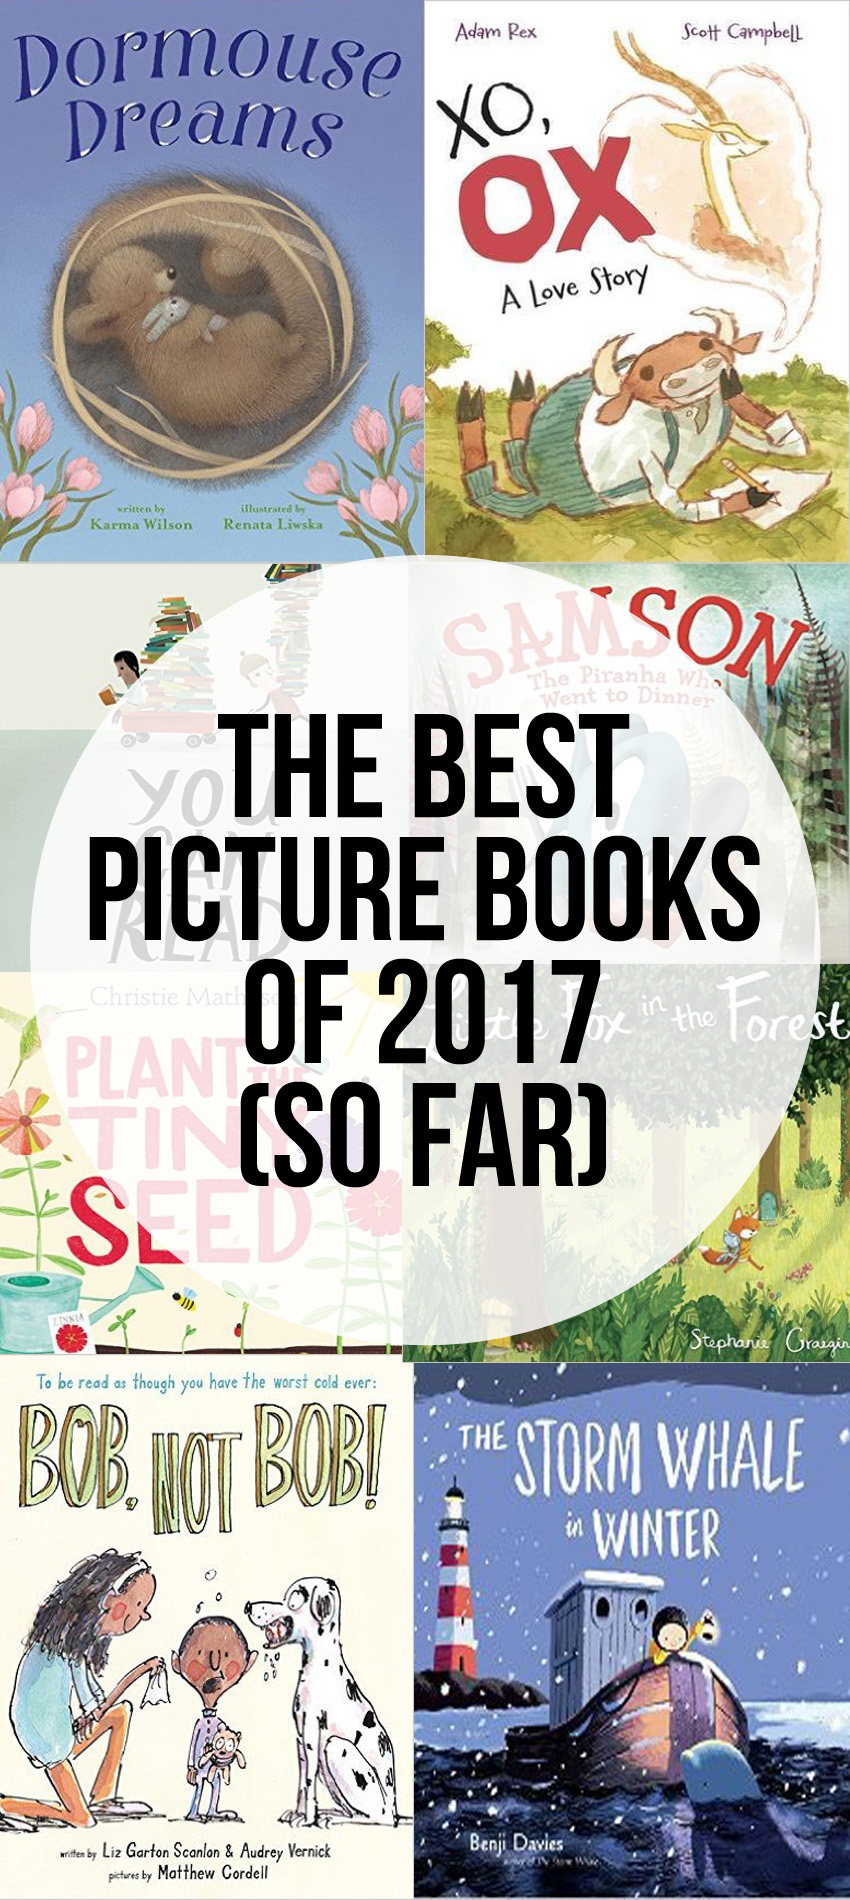 The Best Books of 2017 so far (picture books and chapter books)